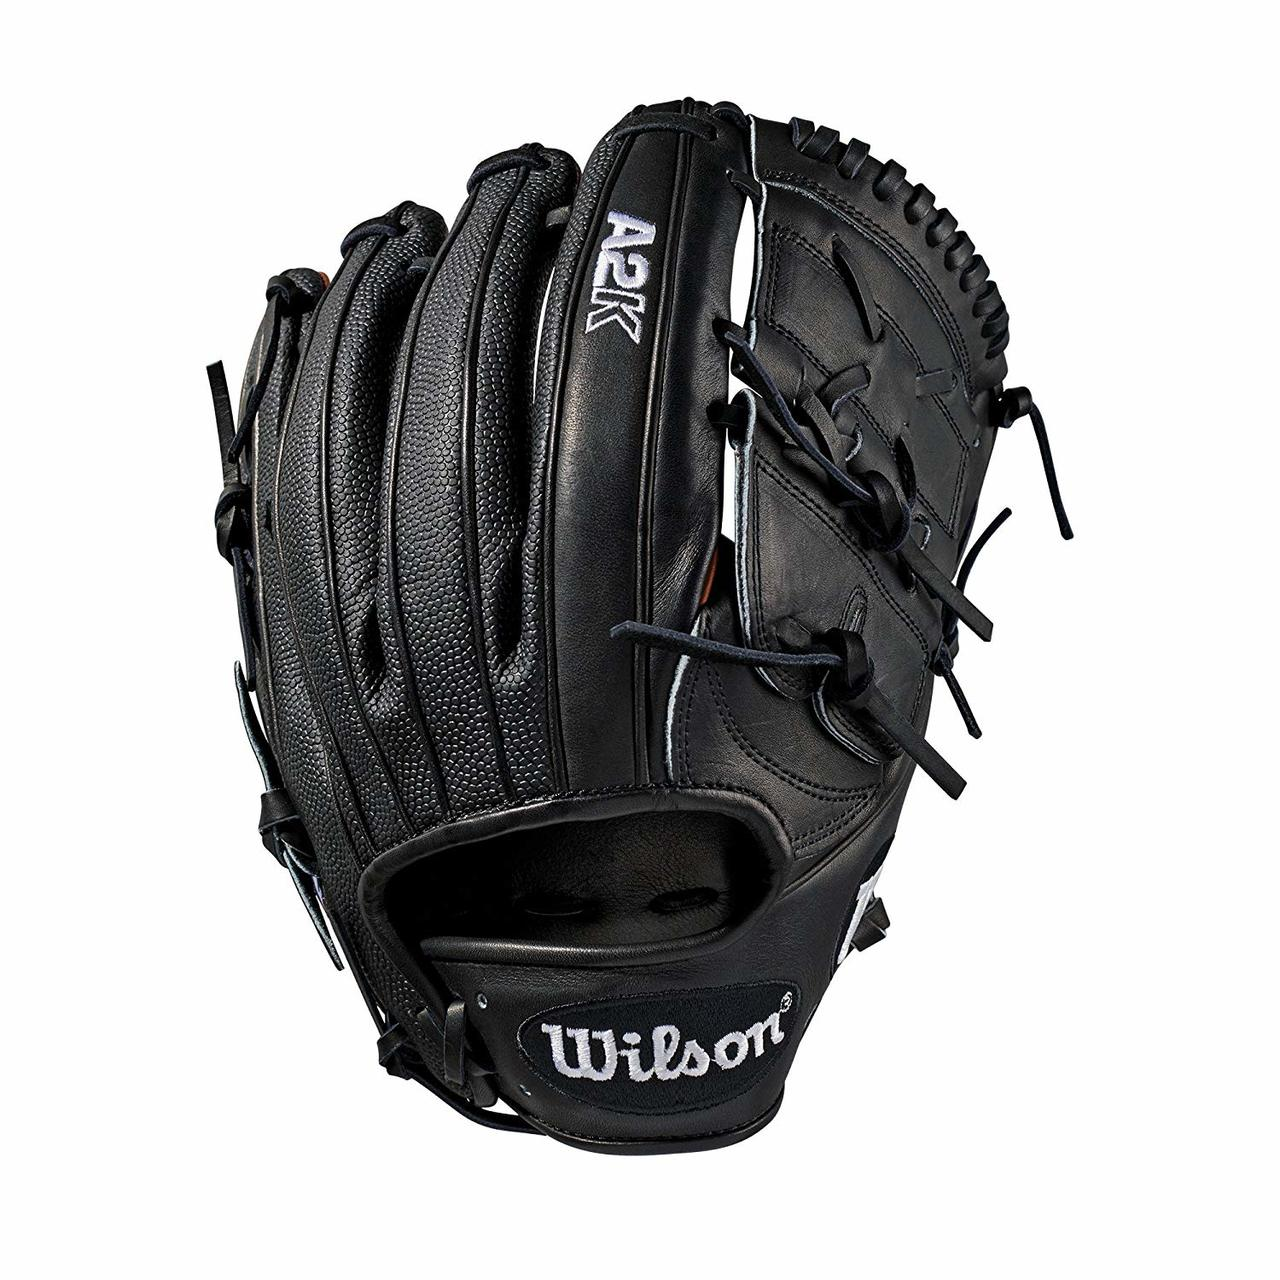 wilson-2019-a2k-baseball-glove-12-inch-right-hand-throw WTA2KRB19B2112SS-RightHandThrow  887768701840 Pitcher model; 2-piece web; available in right- and left-hand Throw Black